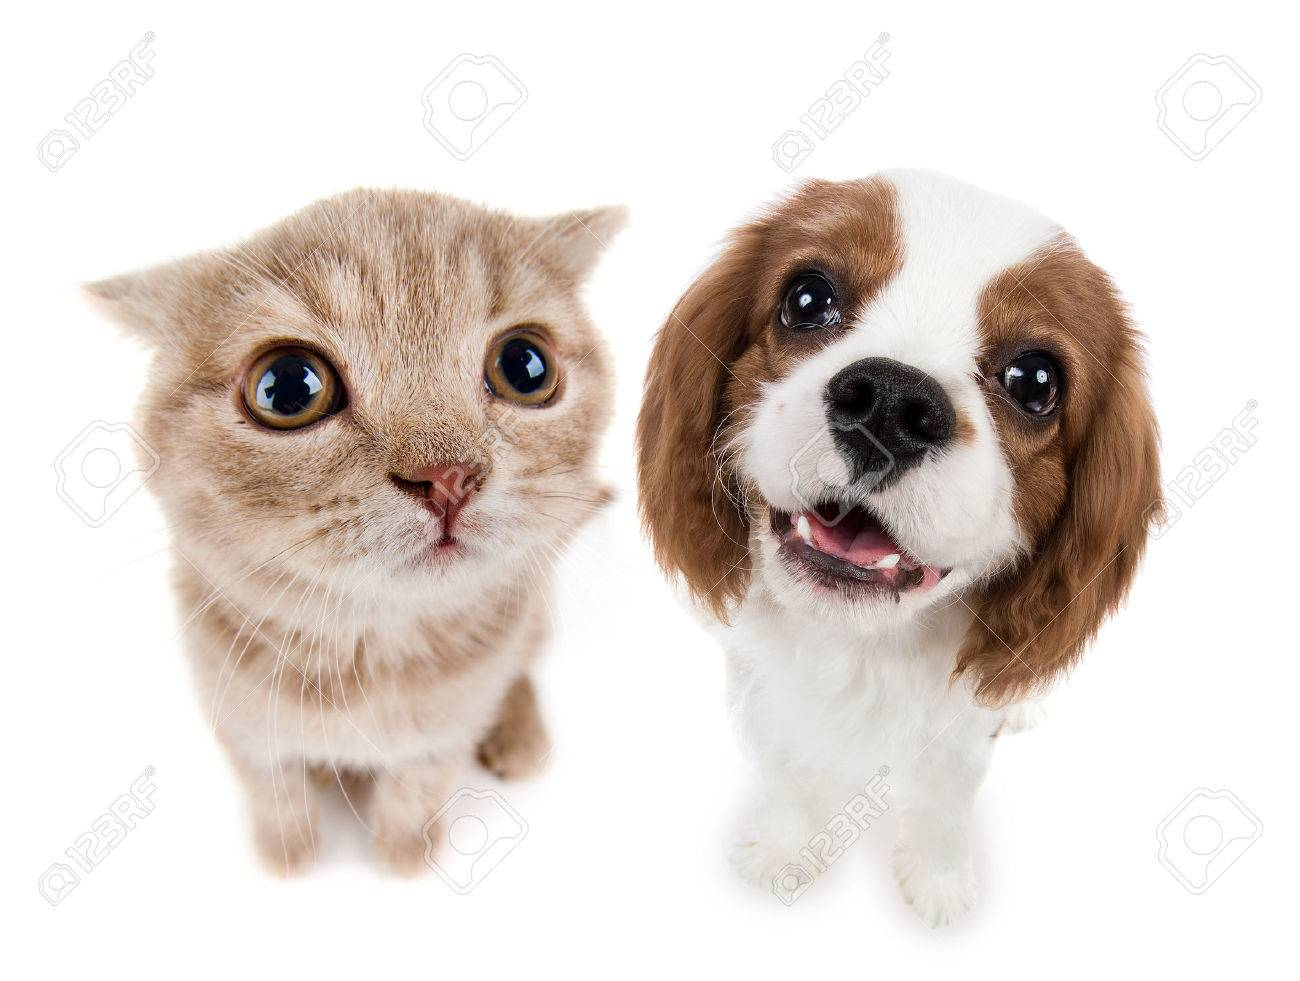 kitten images u0026 stock pictures royalty free kitten photos and